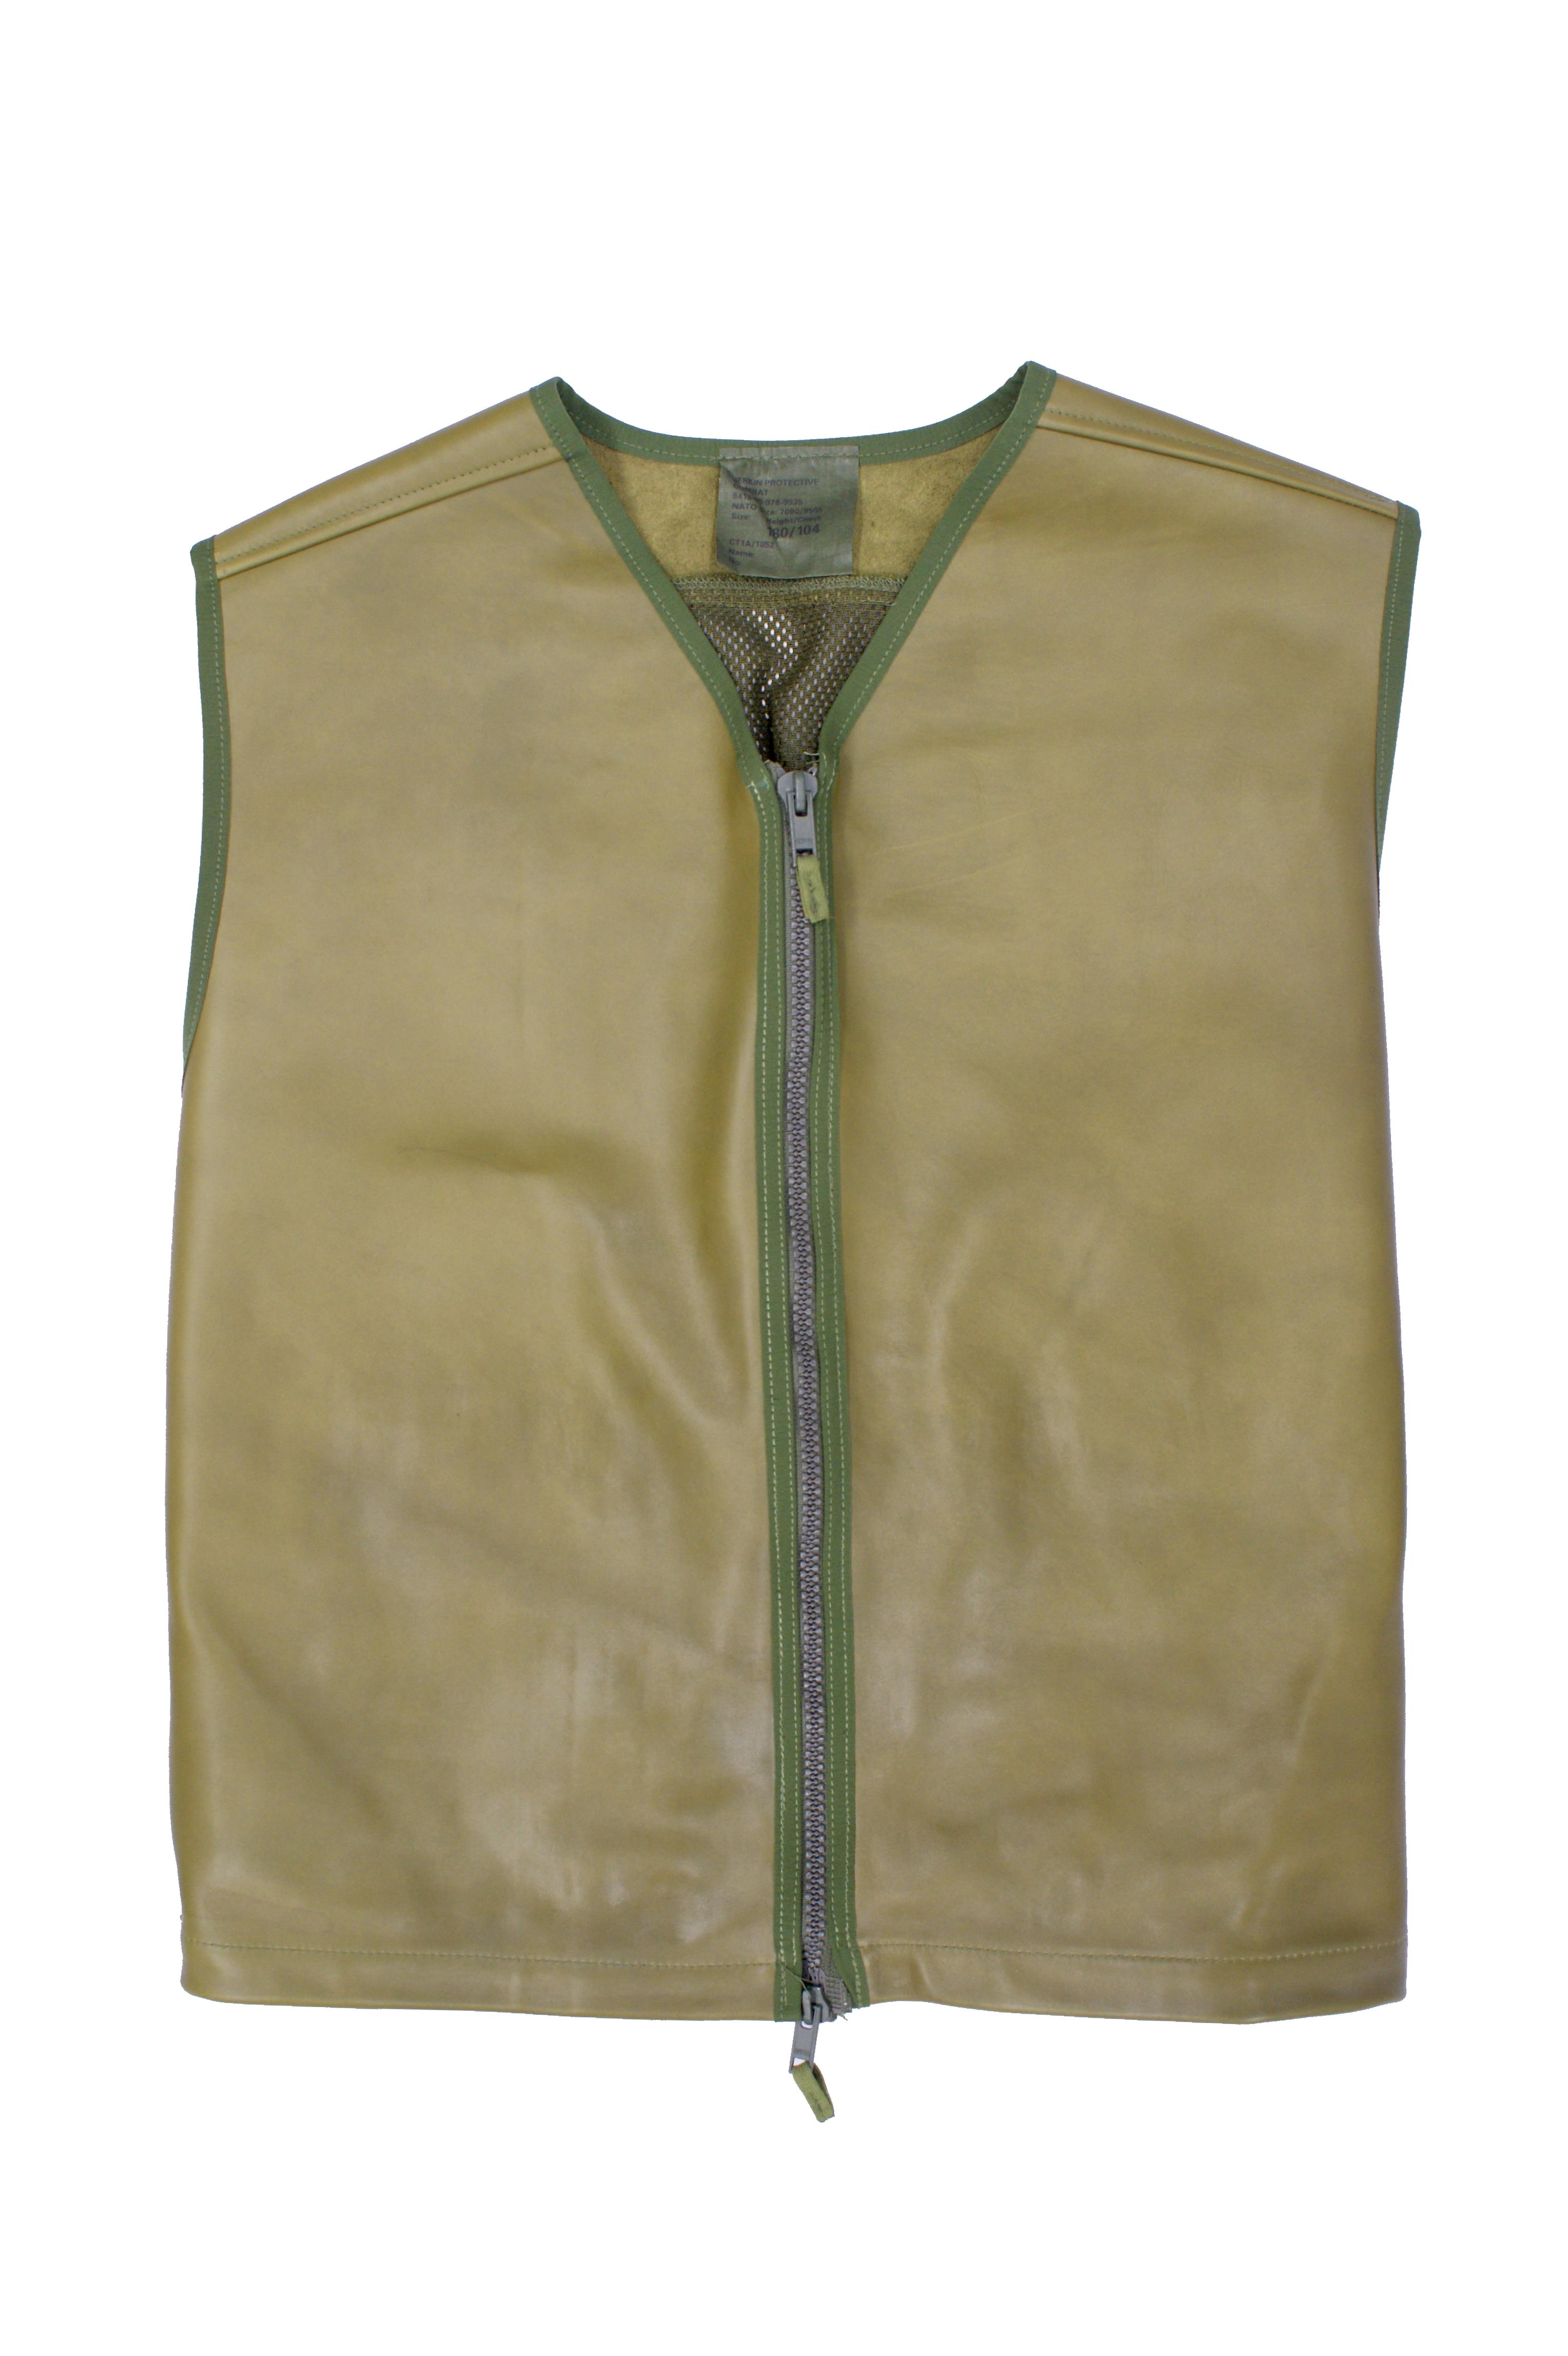 0a730361979bf3 British military Jerkin Protective Combat Vest